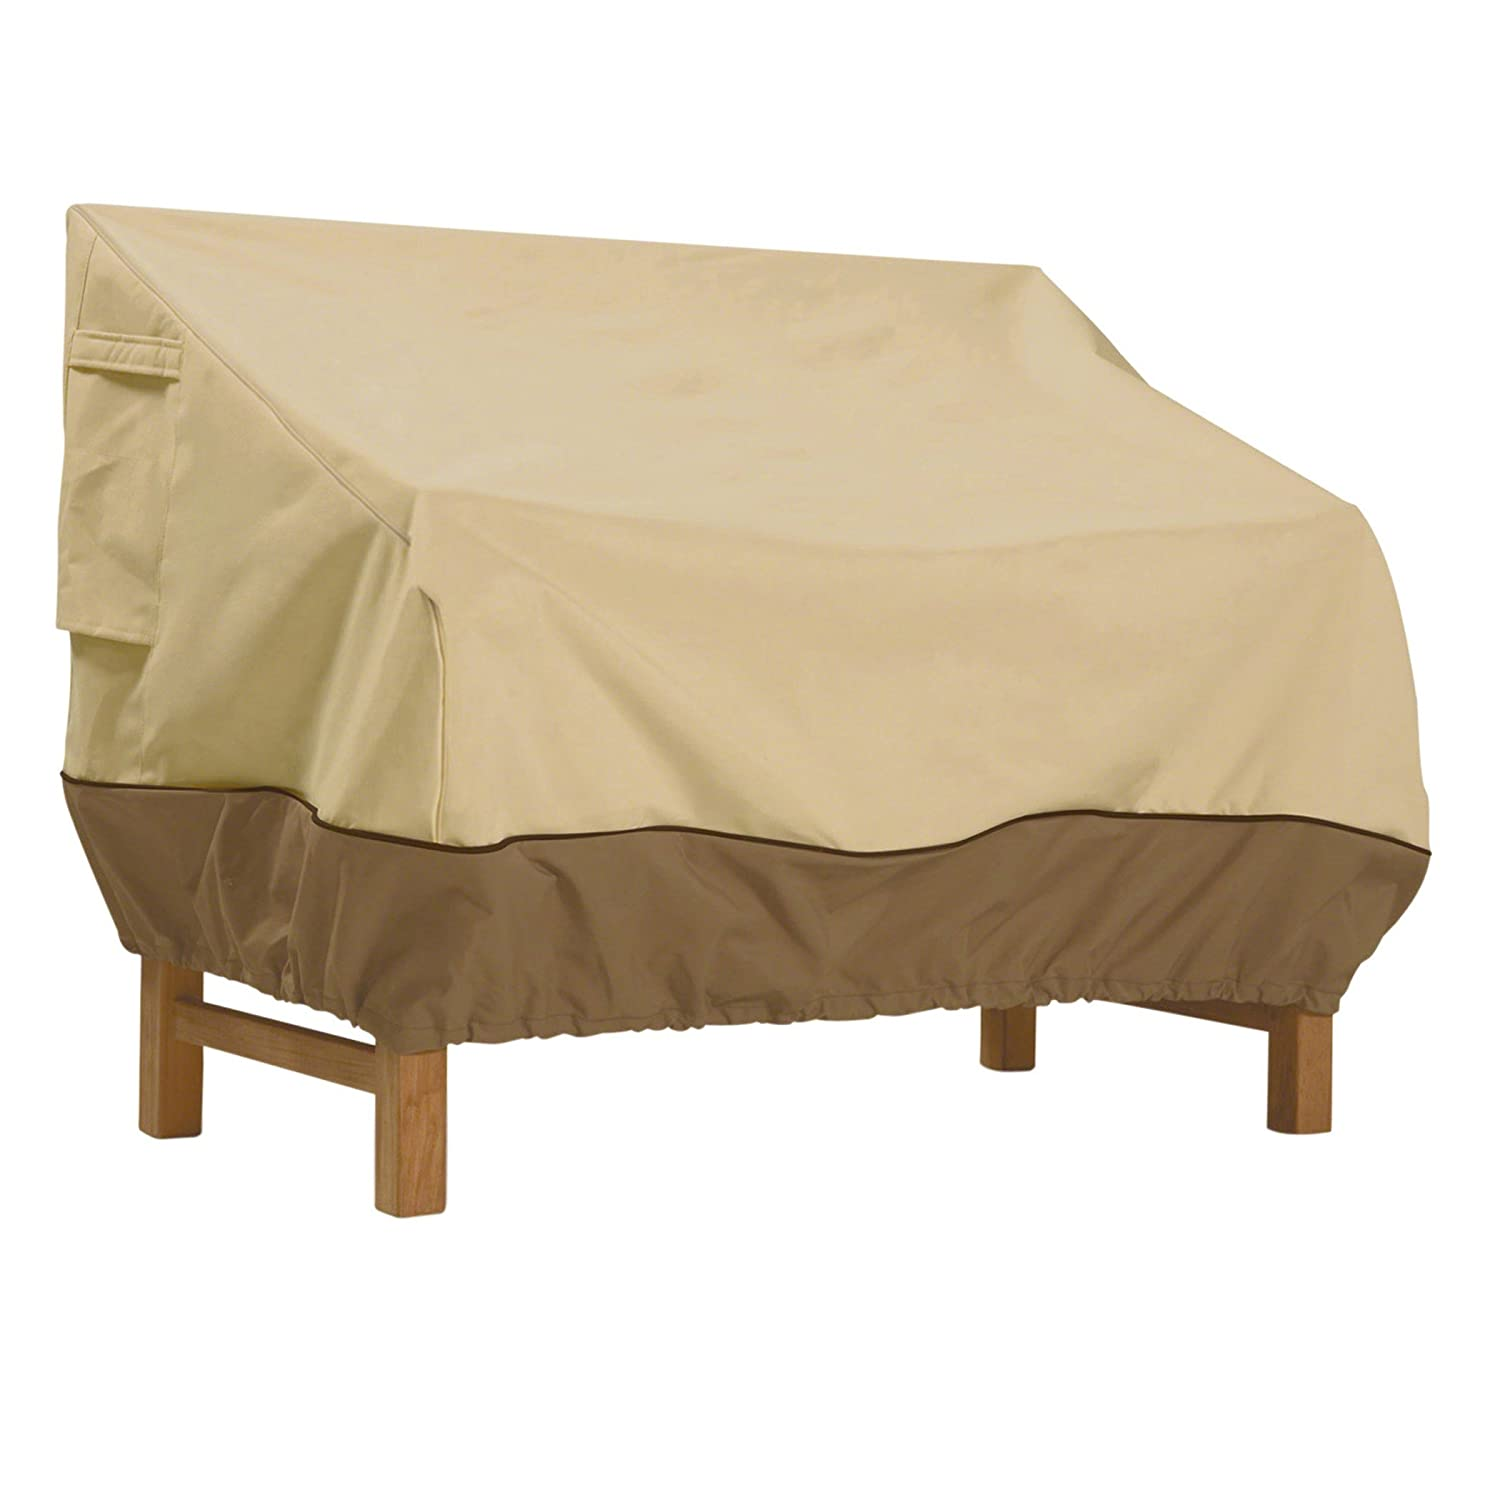 Patio Furniture Covers at Amazon.com: Outdoor Furniture Covers